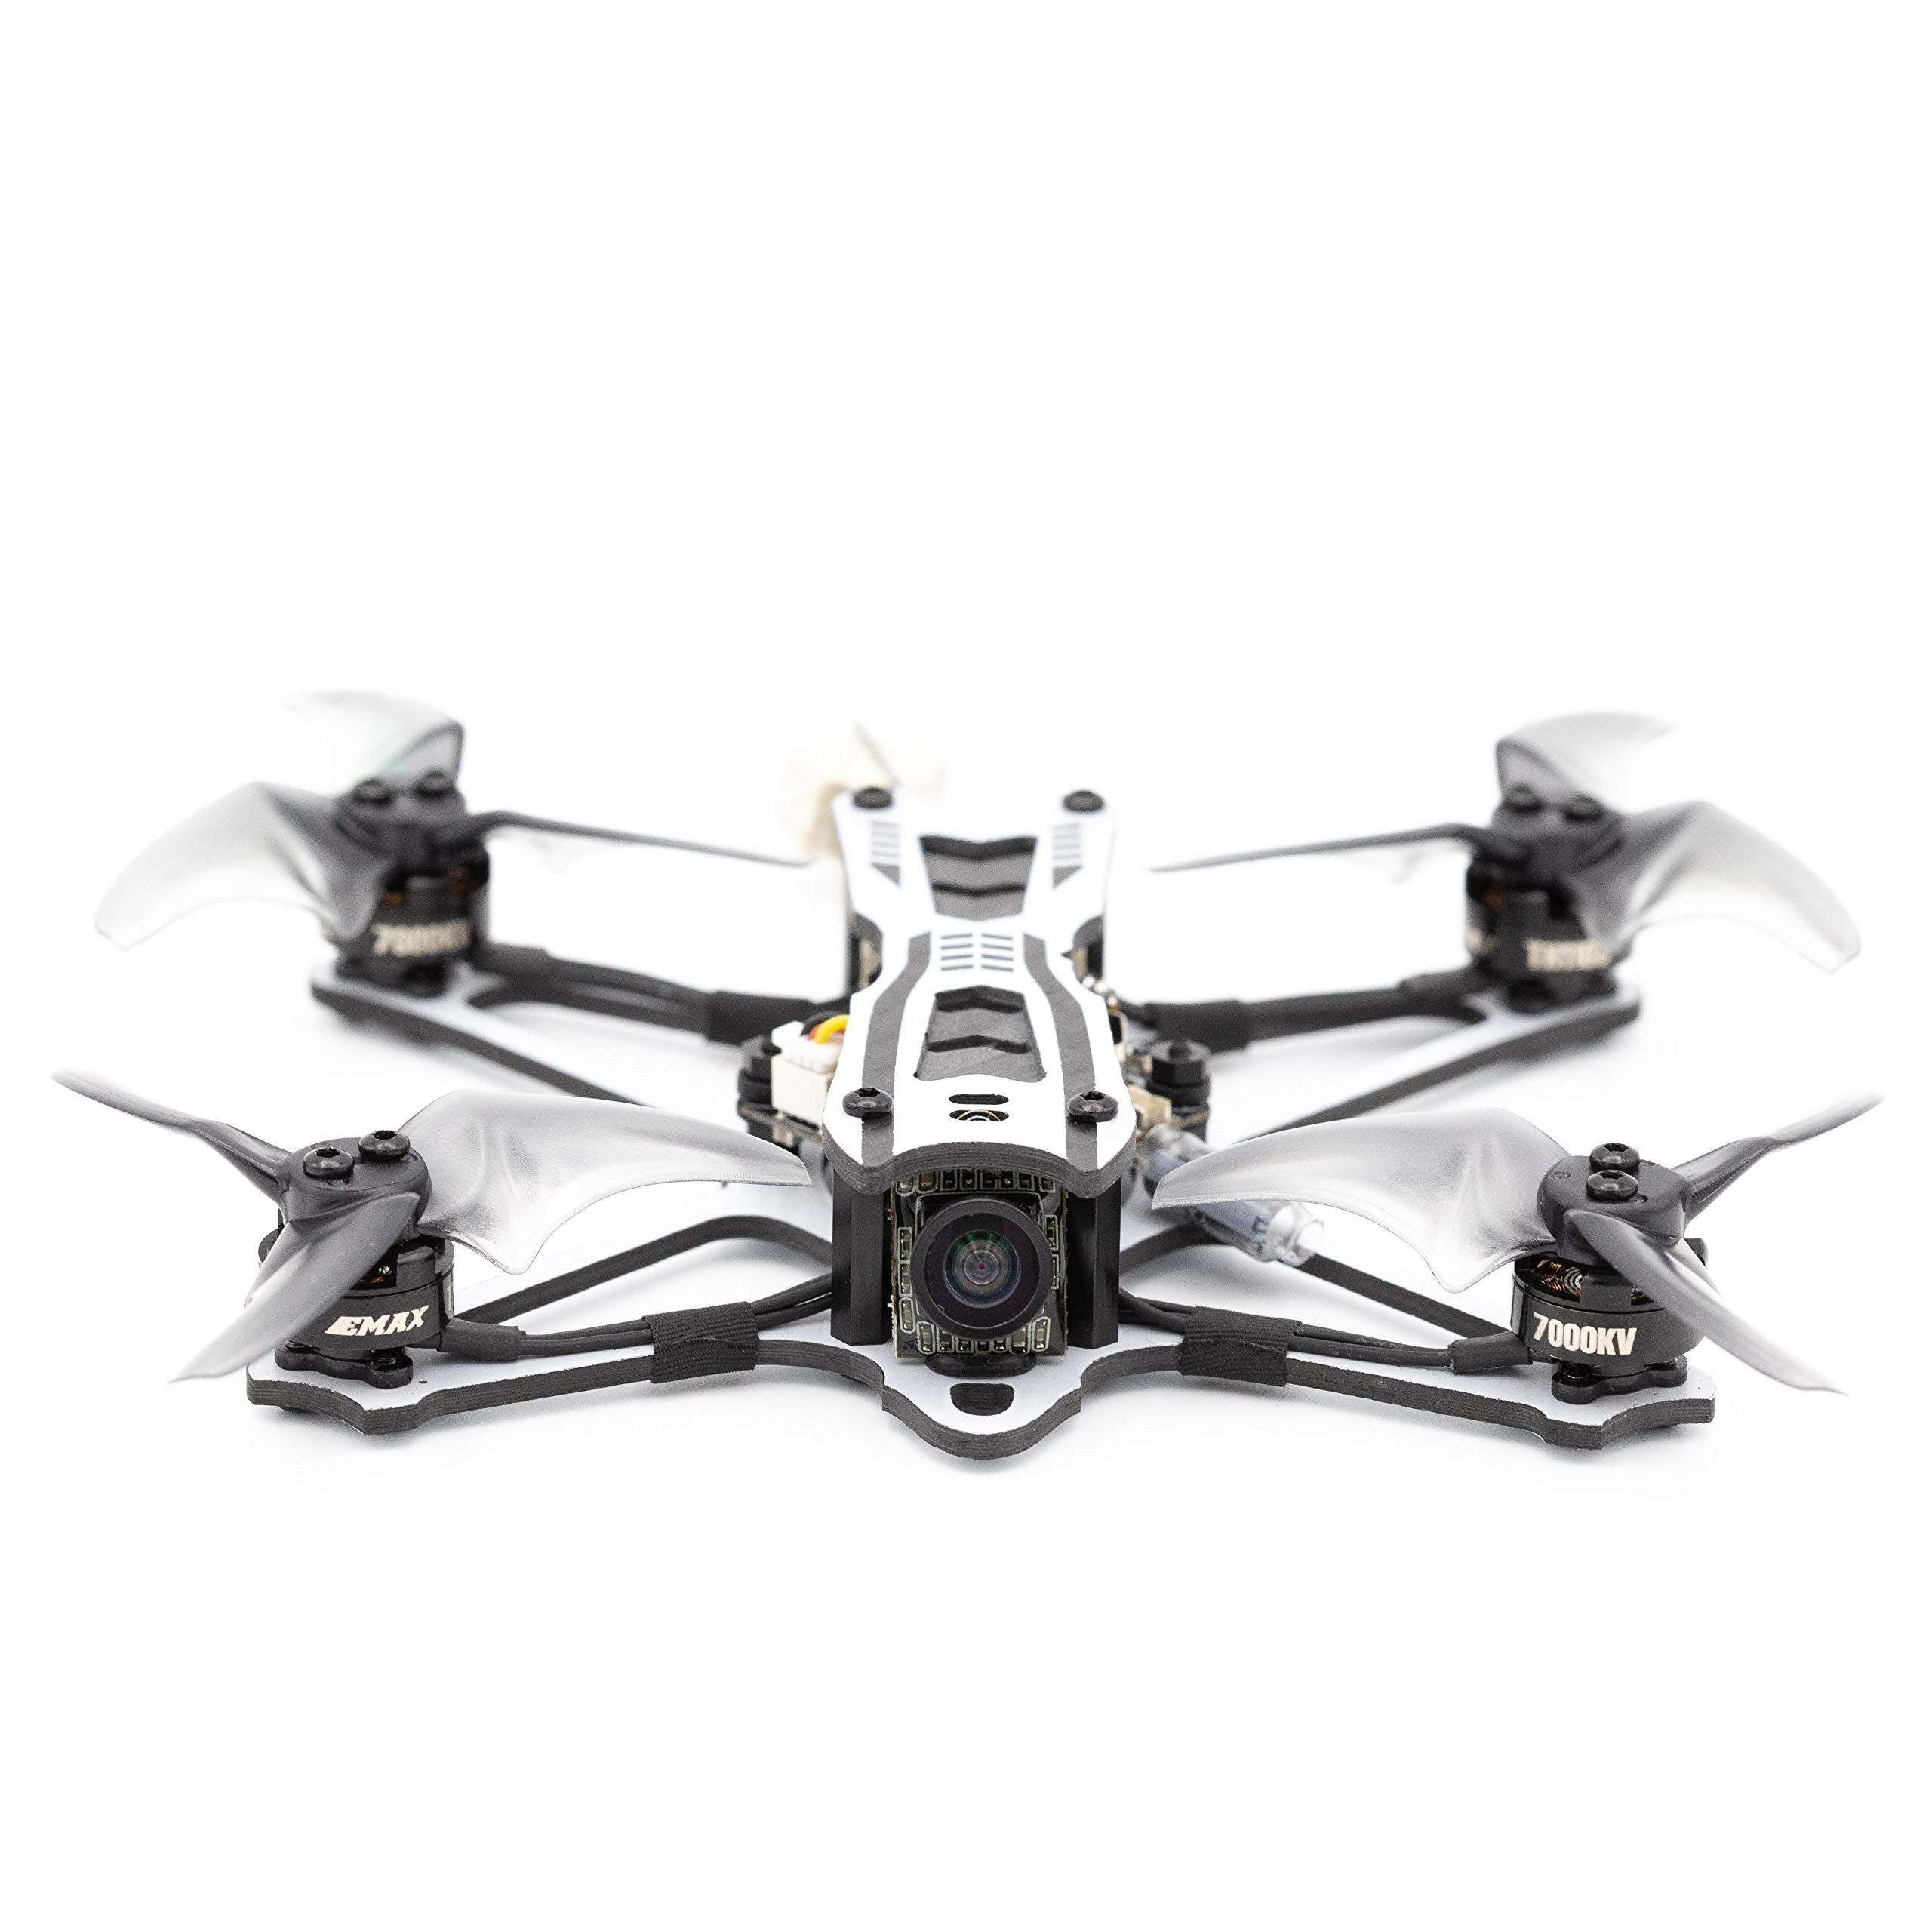 Tinyhawk Freestyle Outdoor Carbon Beginners